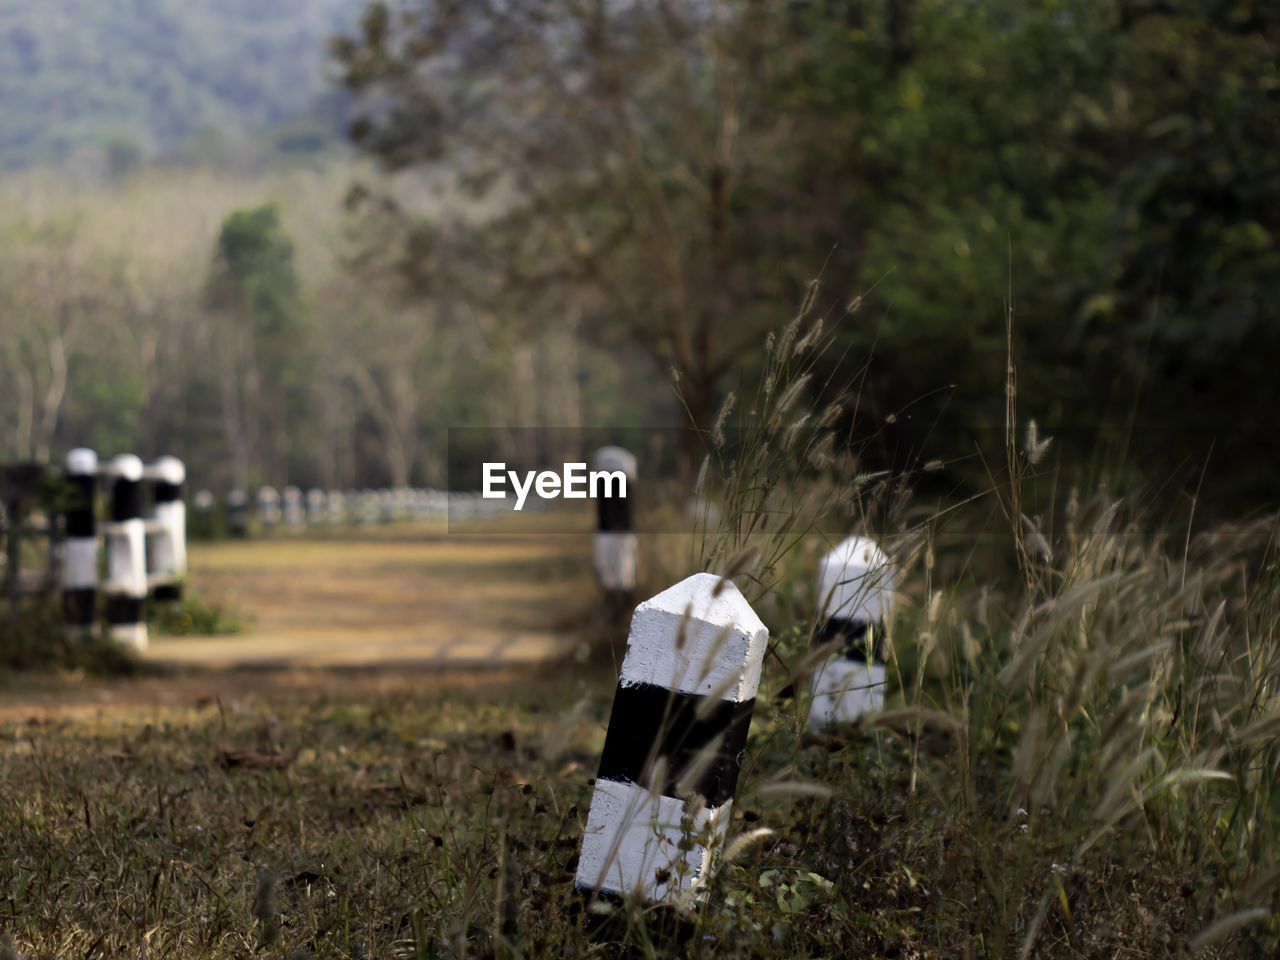 plant, land, field, nature, tree, day, grass, focus on foreground, no people, outdoors, environment, growth, military, landscape, white color, grave, cemetery, selective focus, in a row